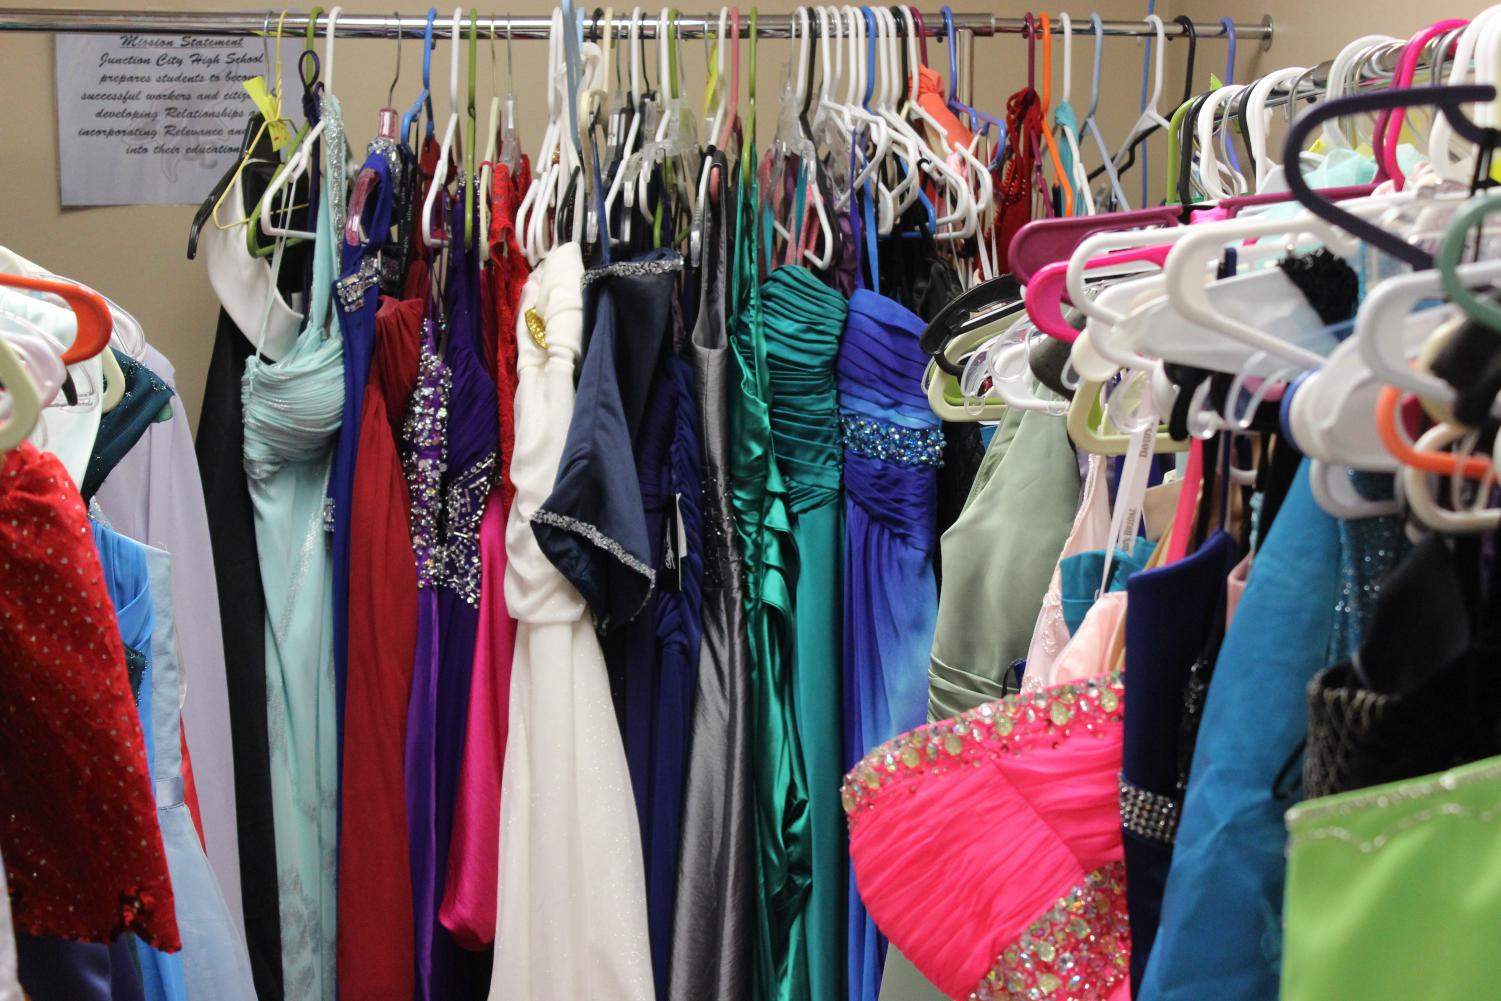 Prom dresses are available in room 217.